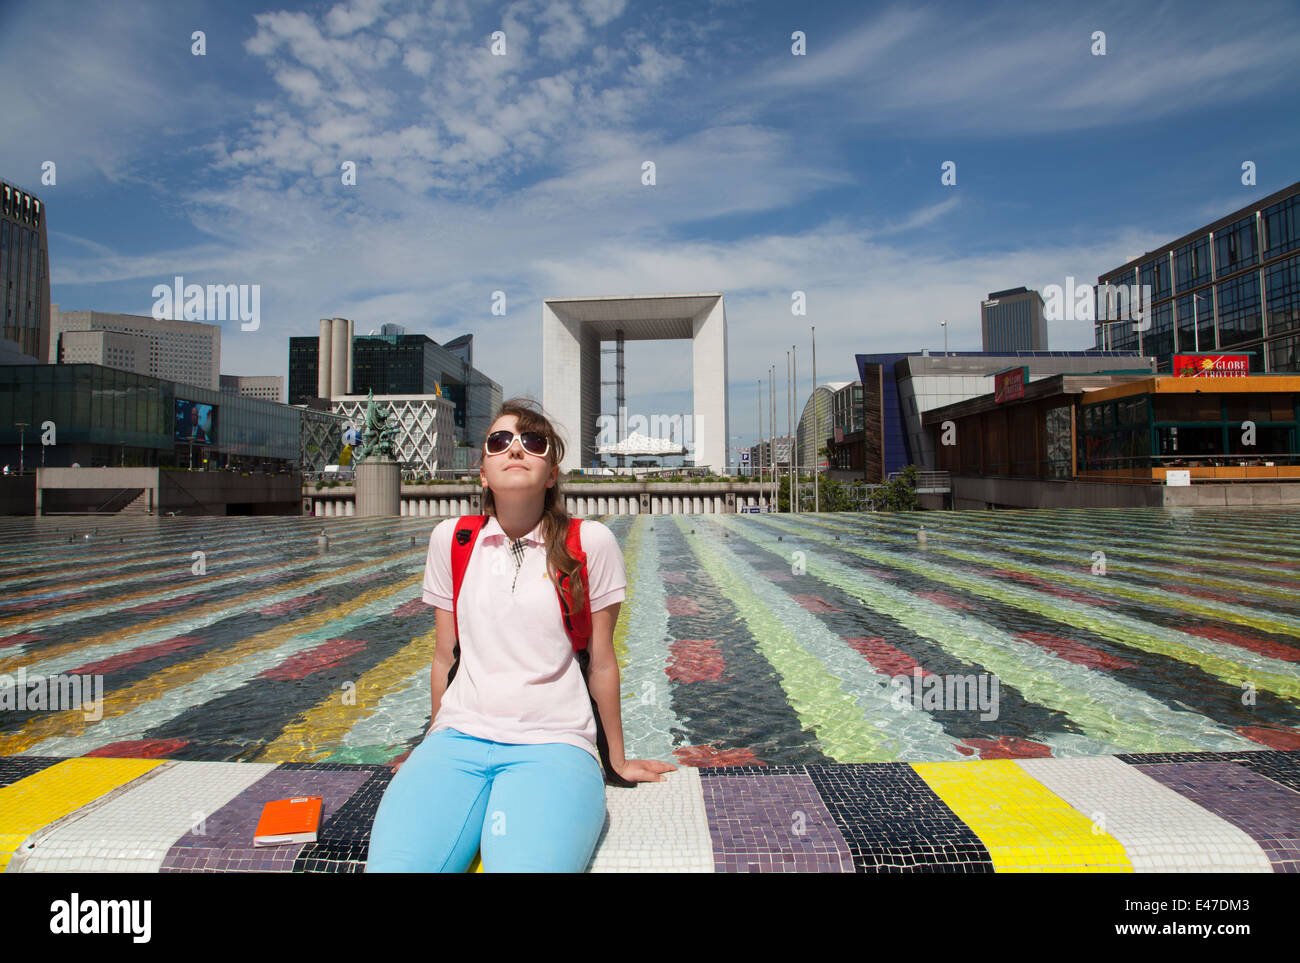 La Défense, Paris, France. - Stock Image